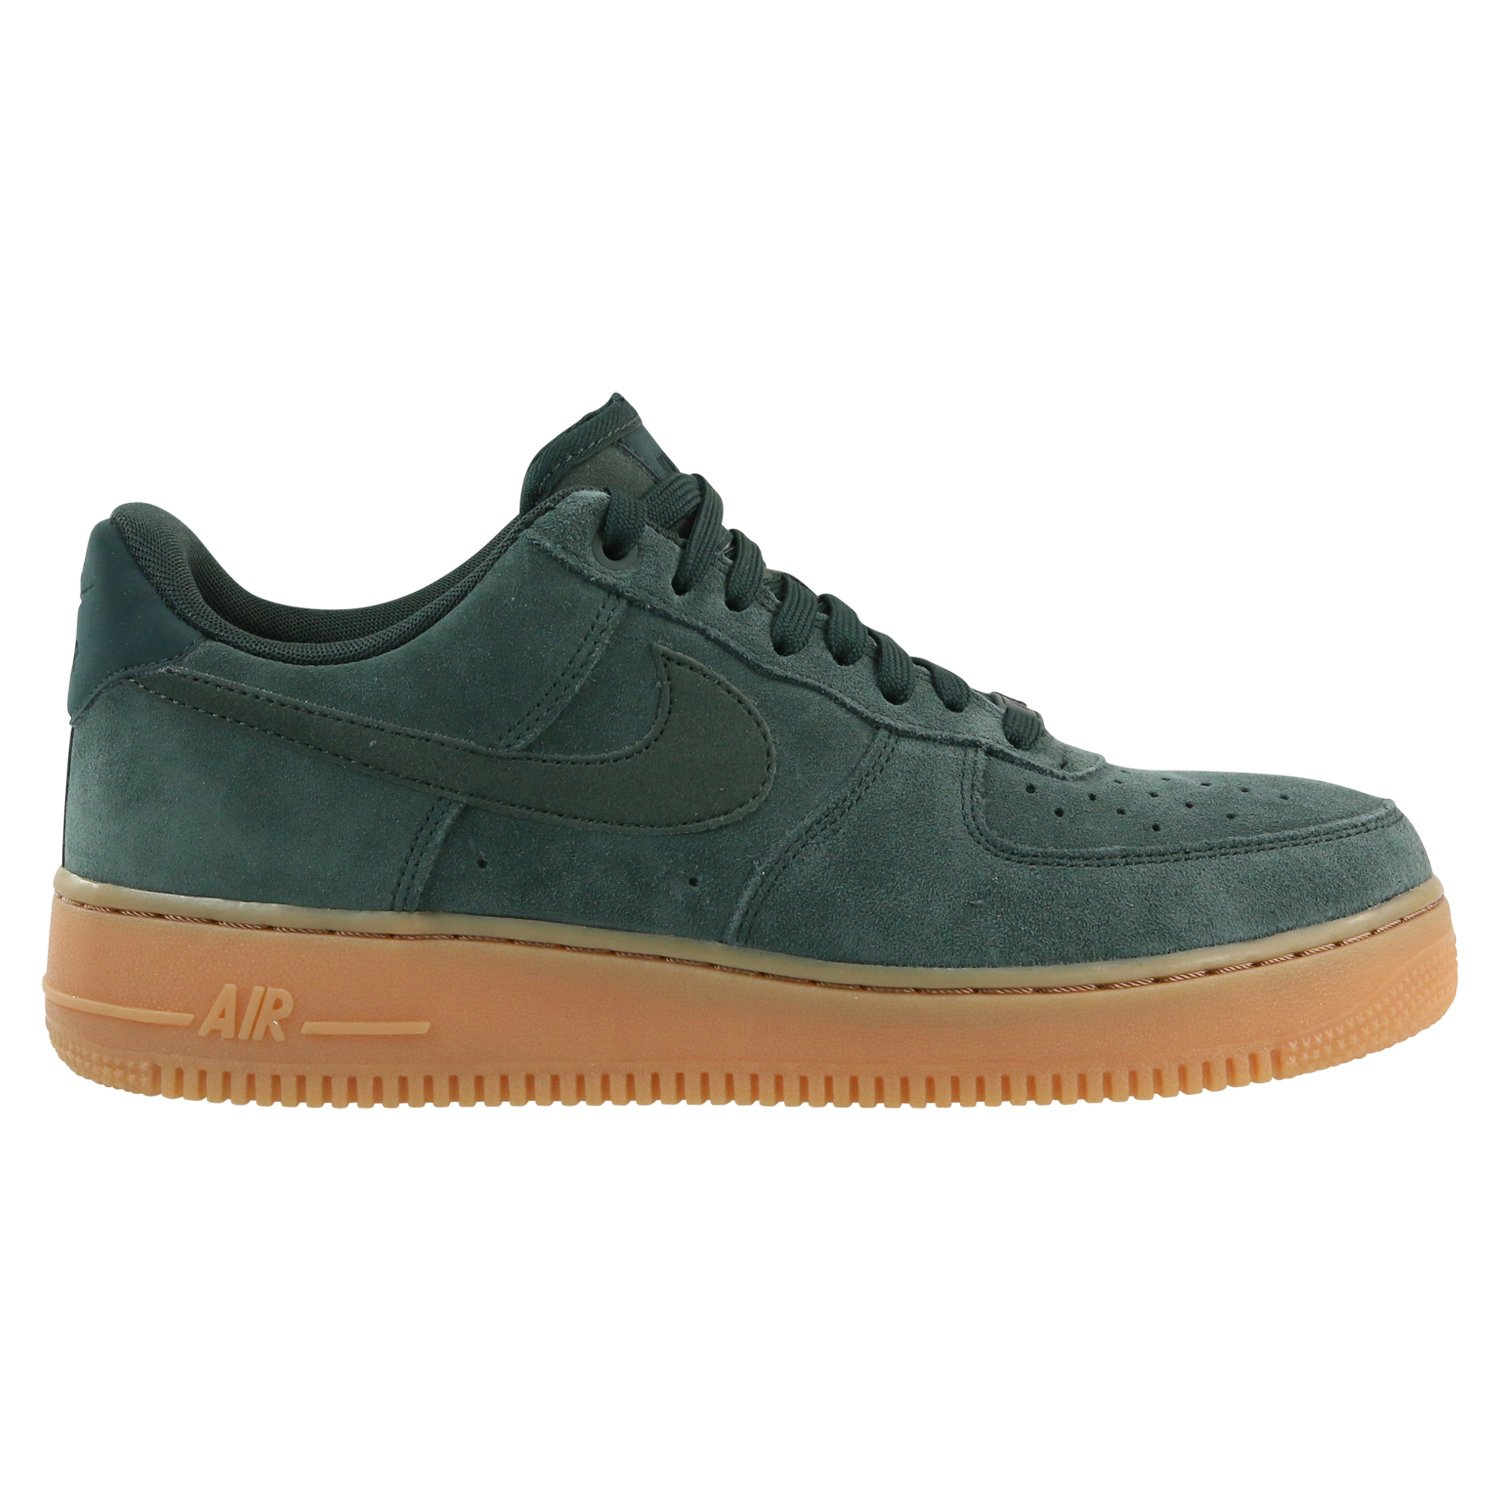 Galleon NIKE Air Force 1 '07 LV8 Suede Mens Basketball